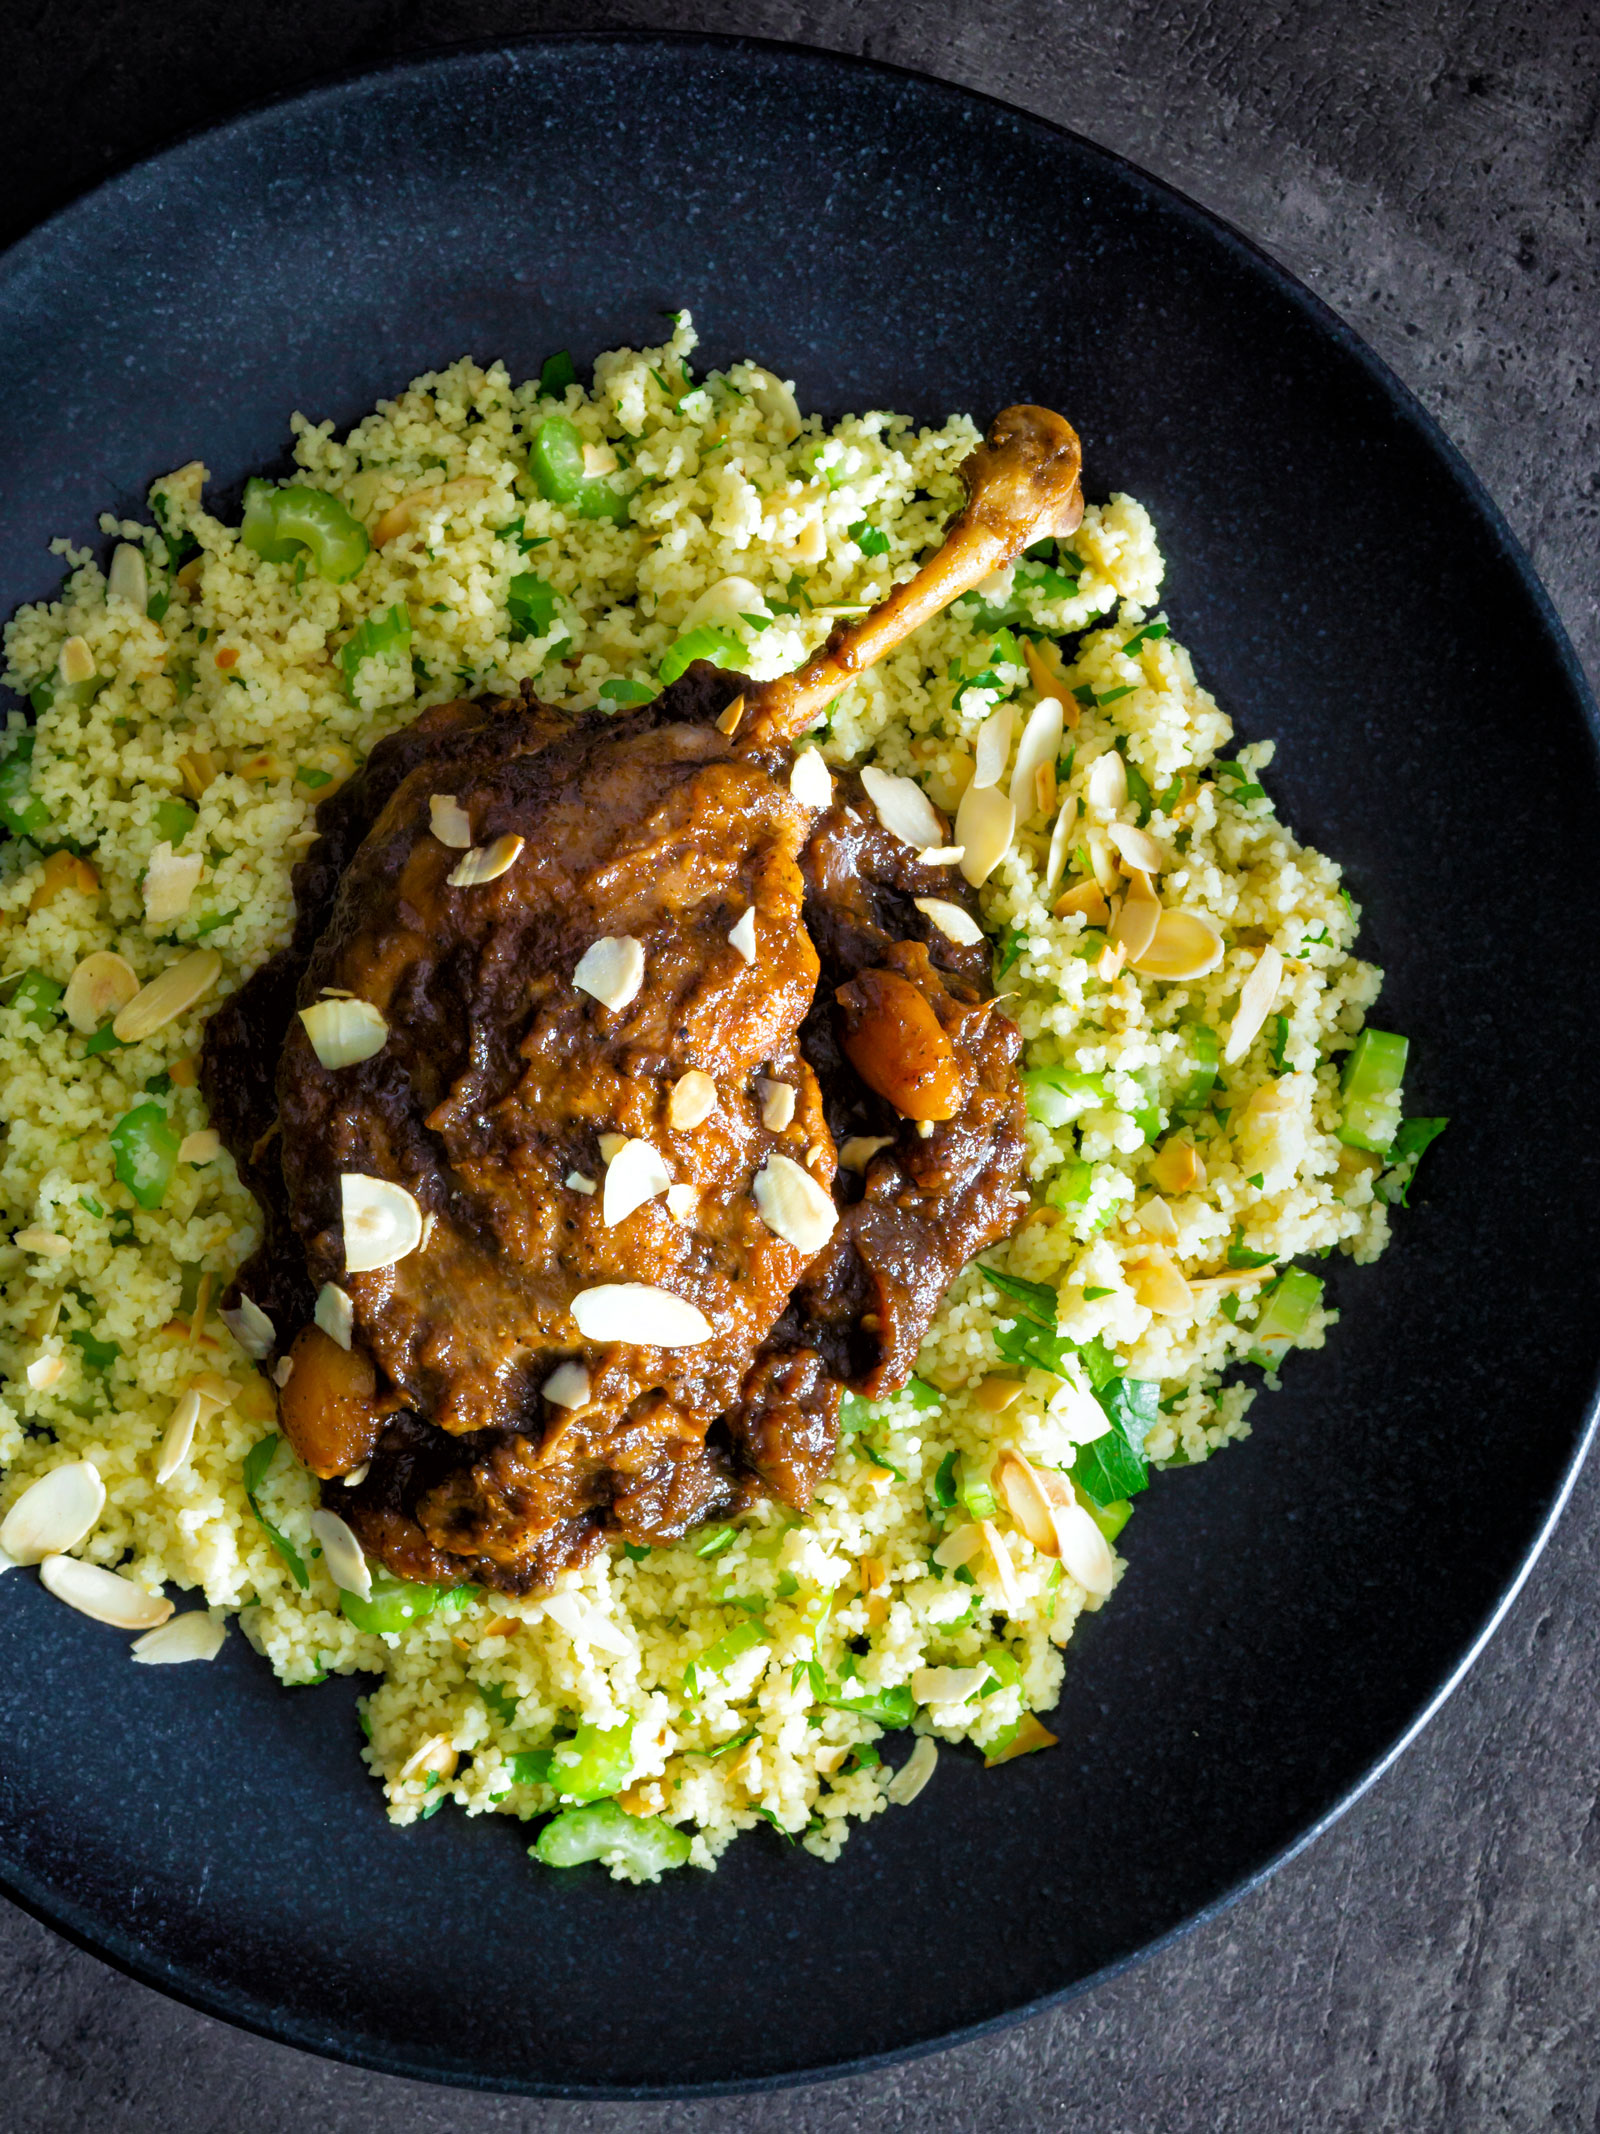 Overhead tamarind duck leg with a date and almond sauce served with couscous.